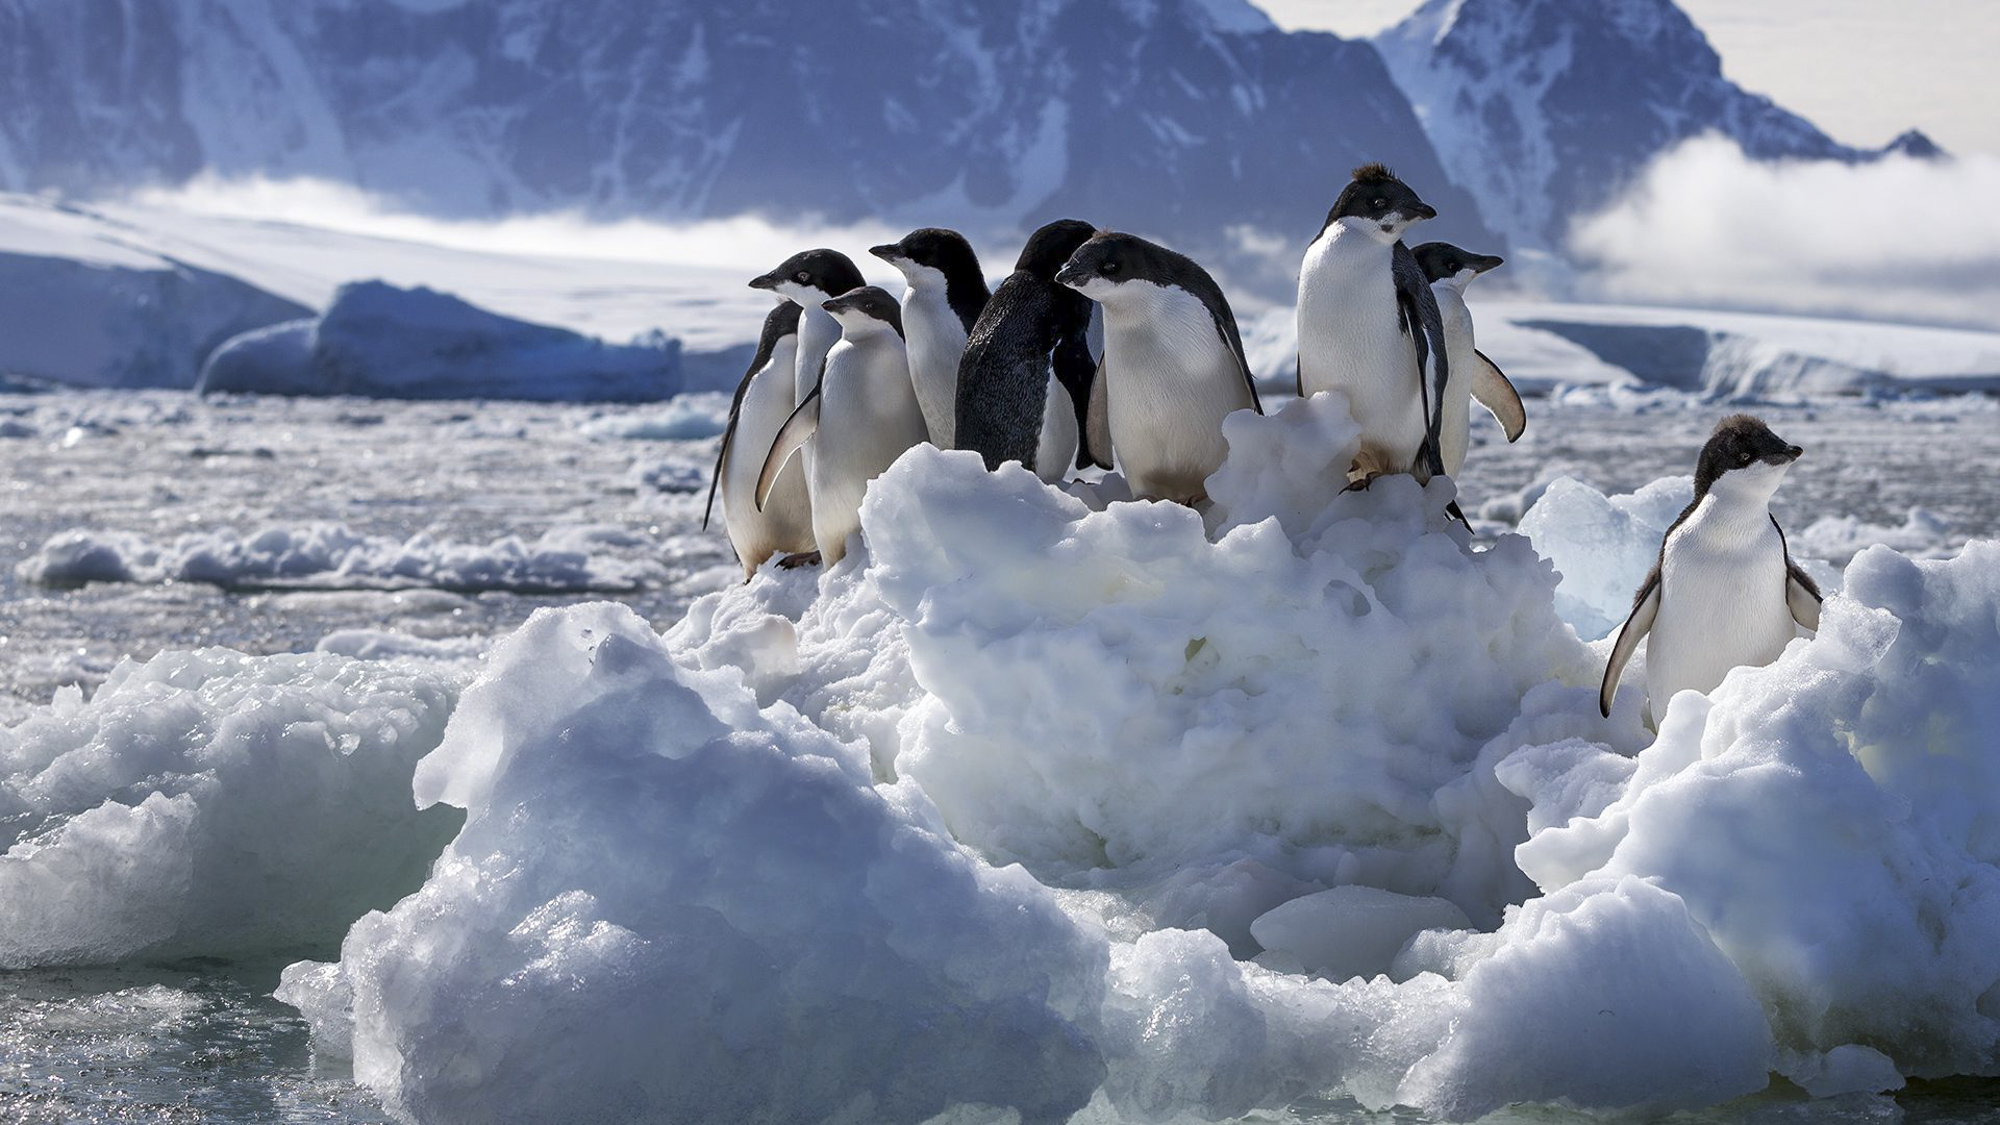 Disneynature Penguins